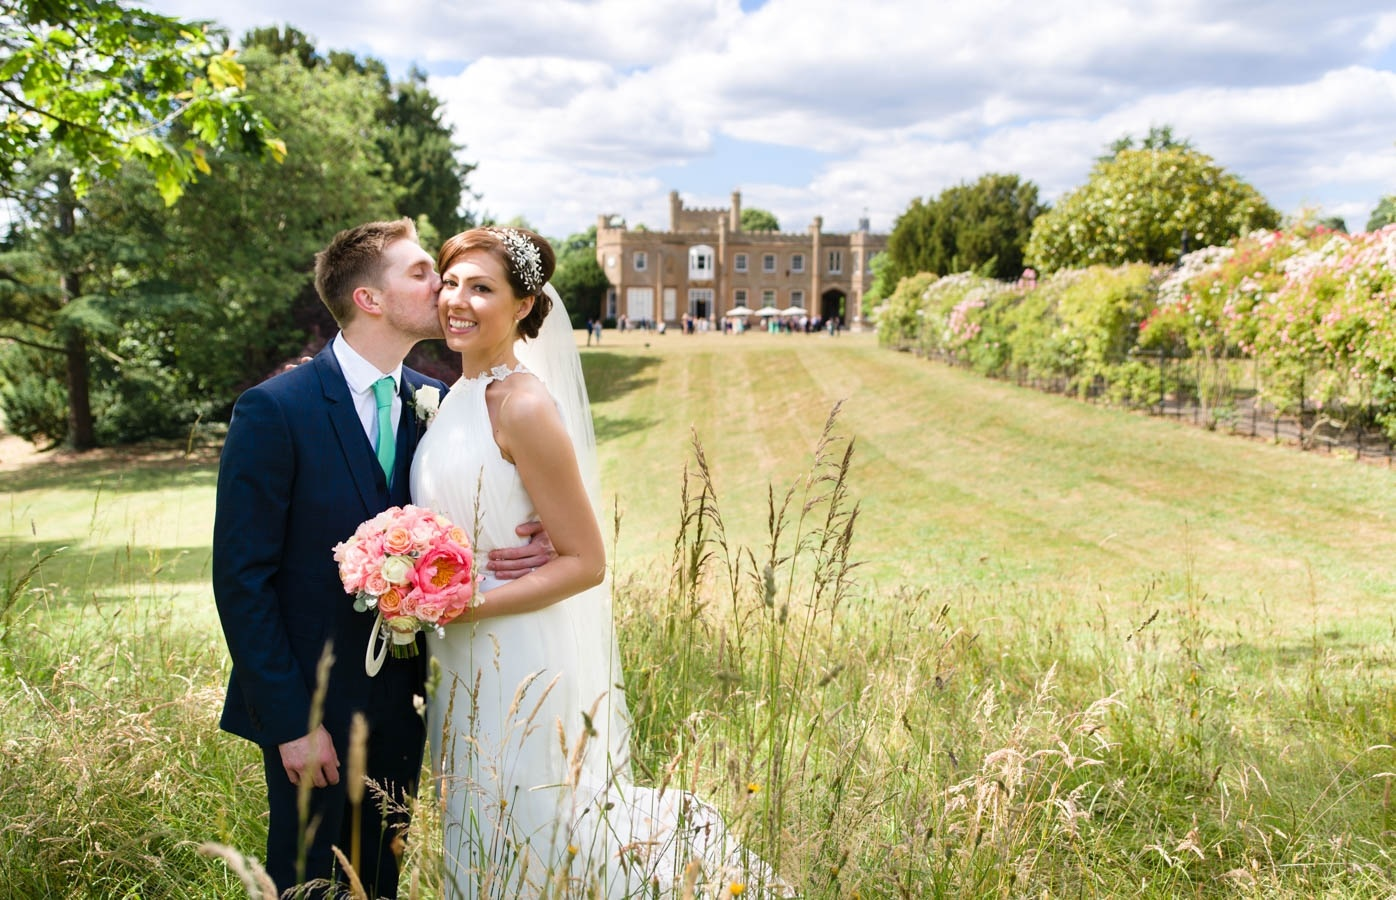 Marianne and Jack - Nonsuch Manor - 55a6bcec7f3b2